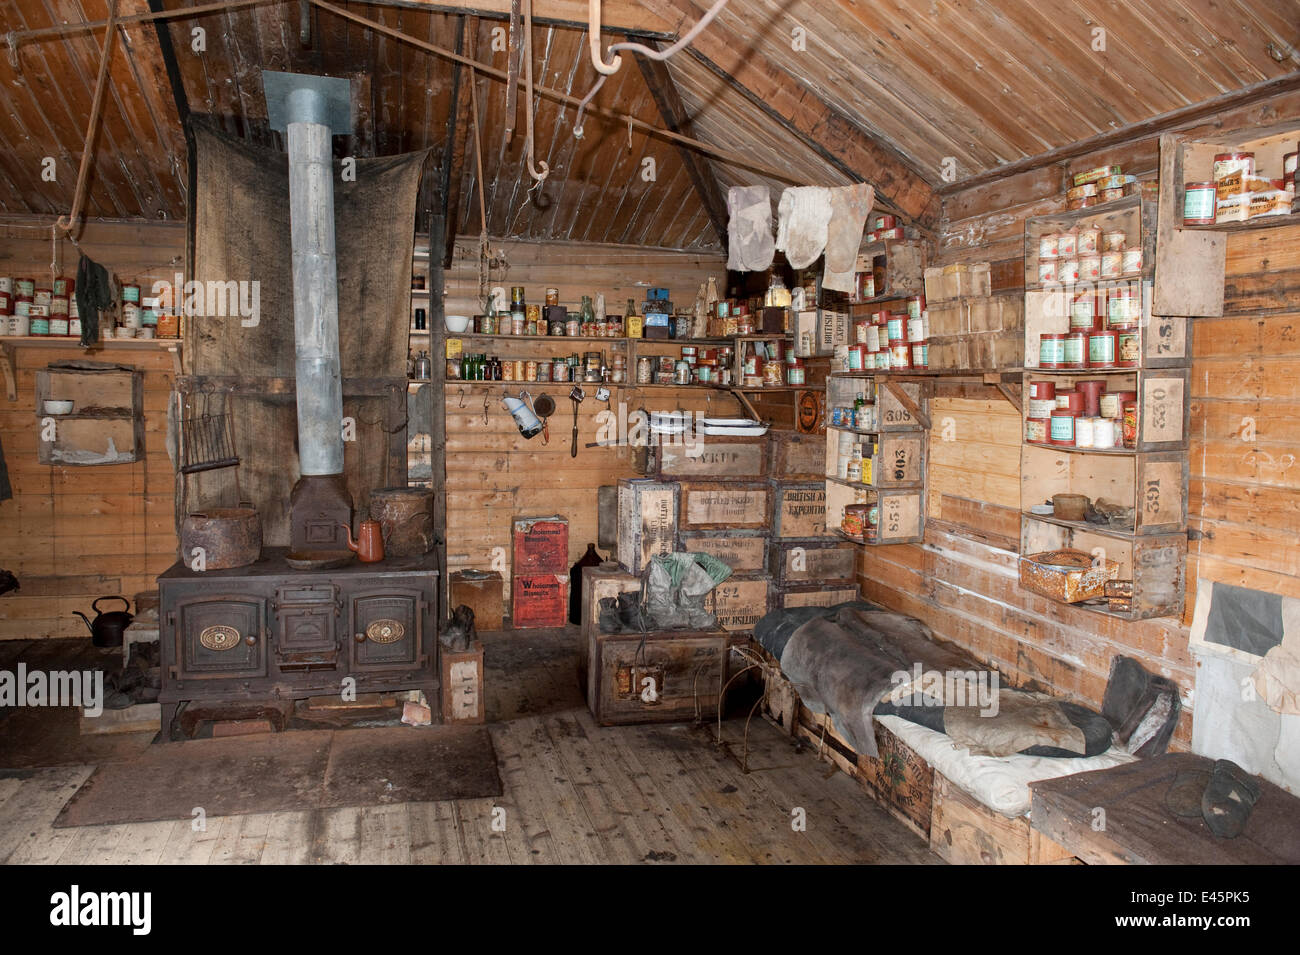 Interior of Shackleton's Nimrod Hut, frozen in time from the British Antarctic Expedition 1907, Cape Royds, - Stock Image